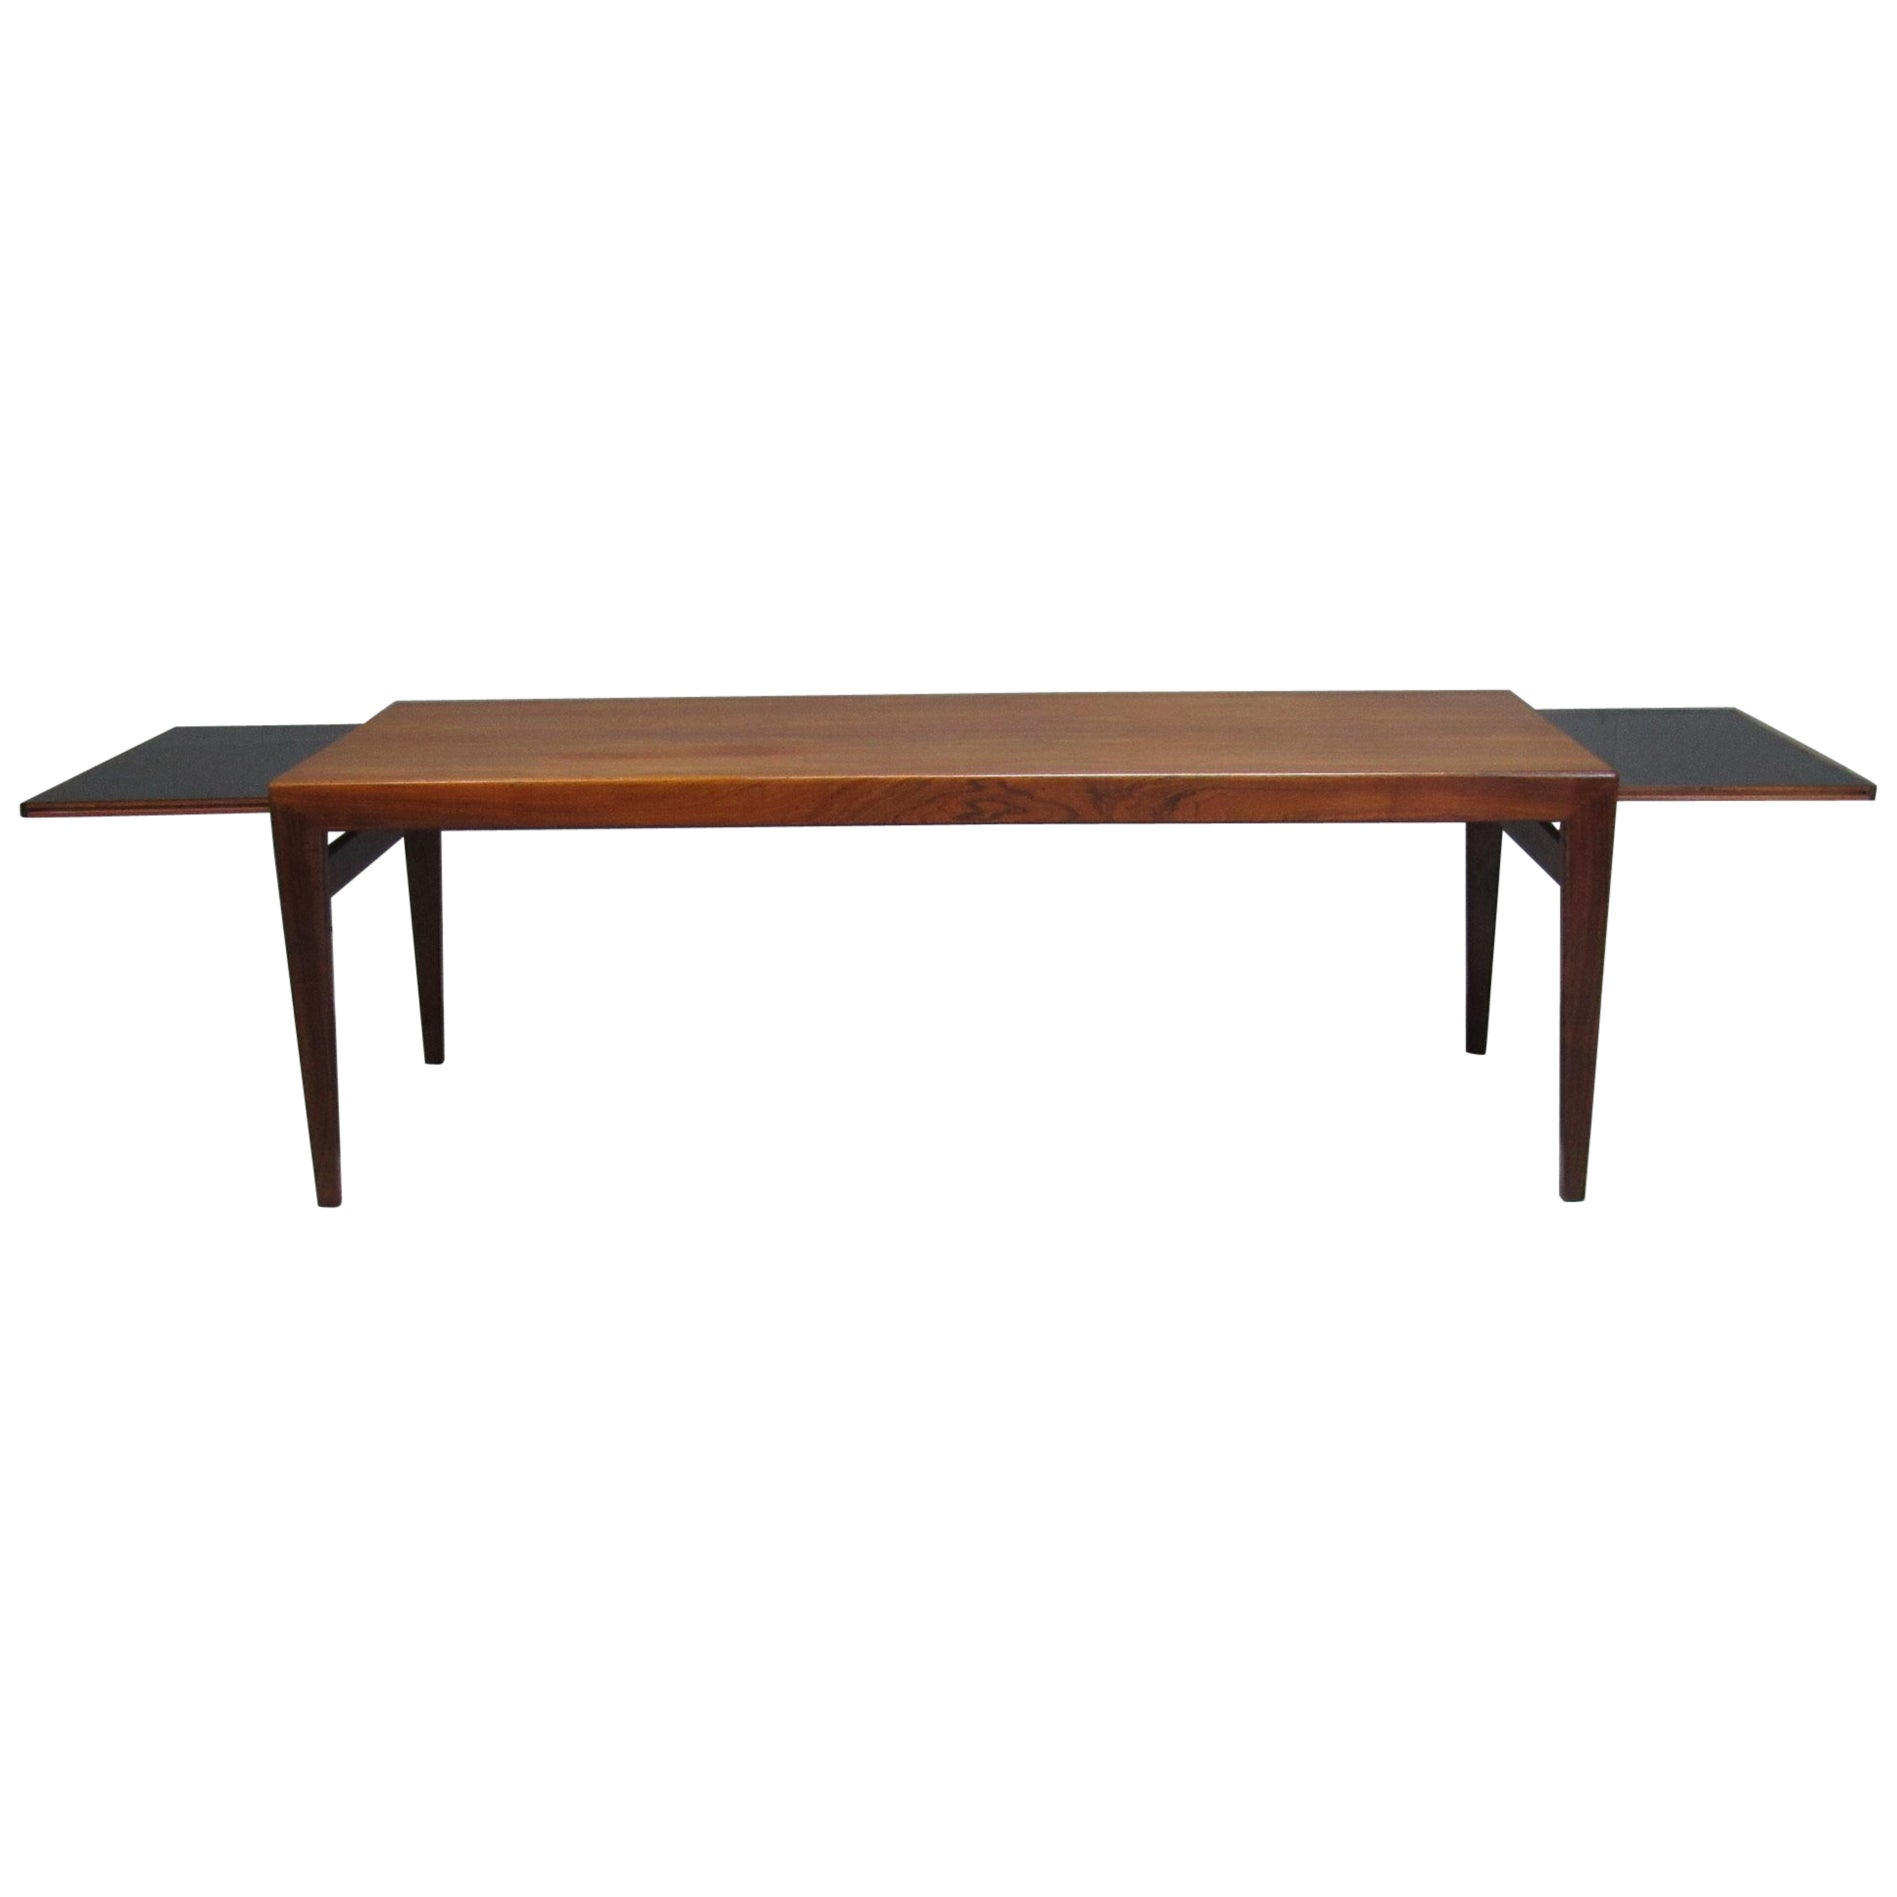 Midcentury Danish Rosewood Extending Coffee Table by Severin Hansen for Haslev